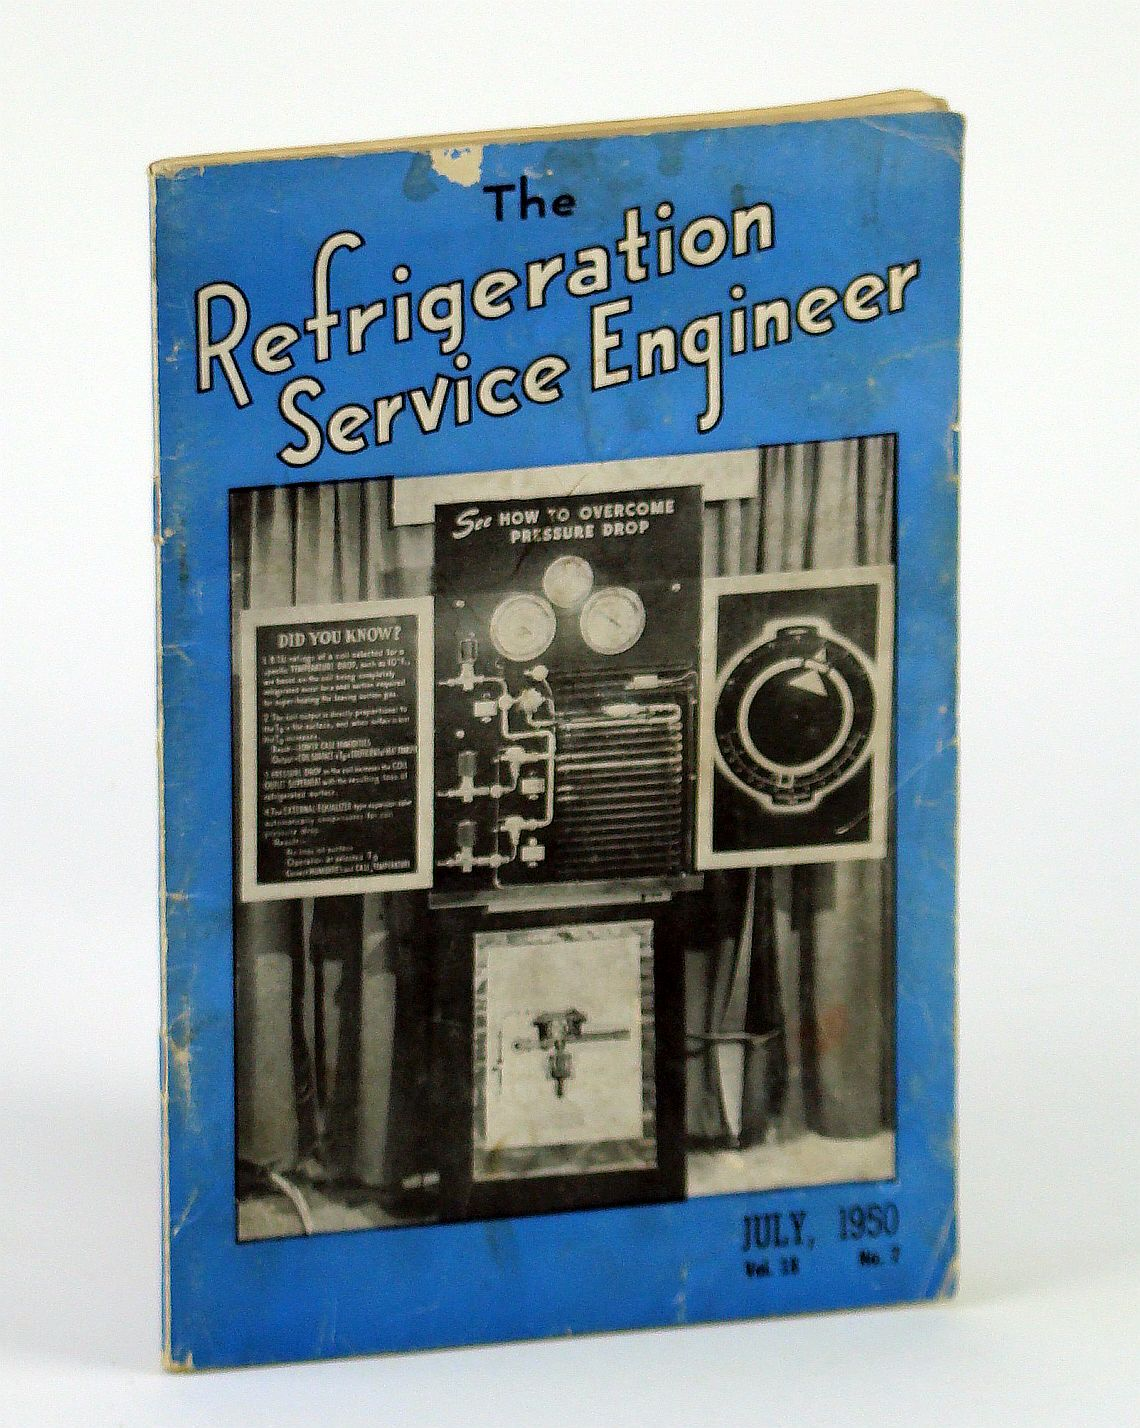 Image for The Refrigeration Service Engineer, July 1950, Volume 18, No. 7 - Newly Devised Drier-Graph